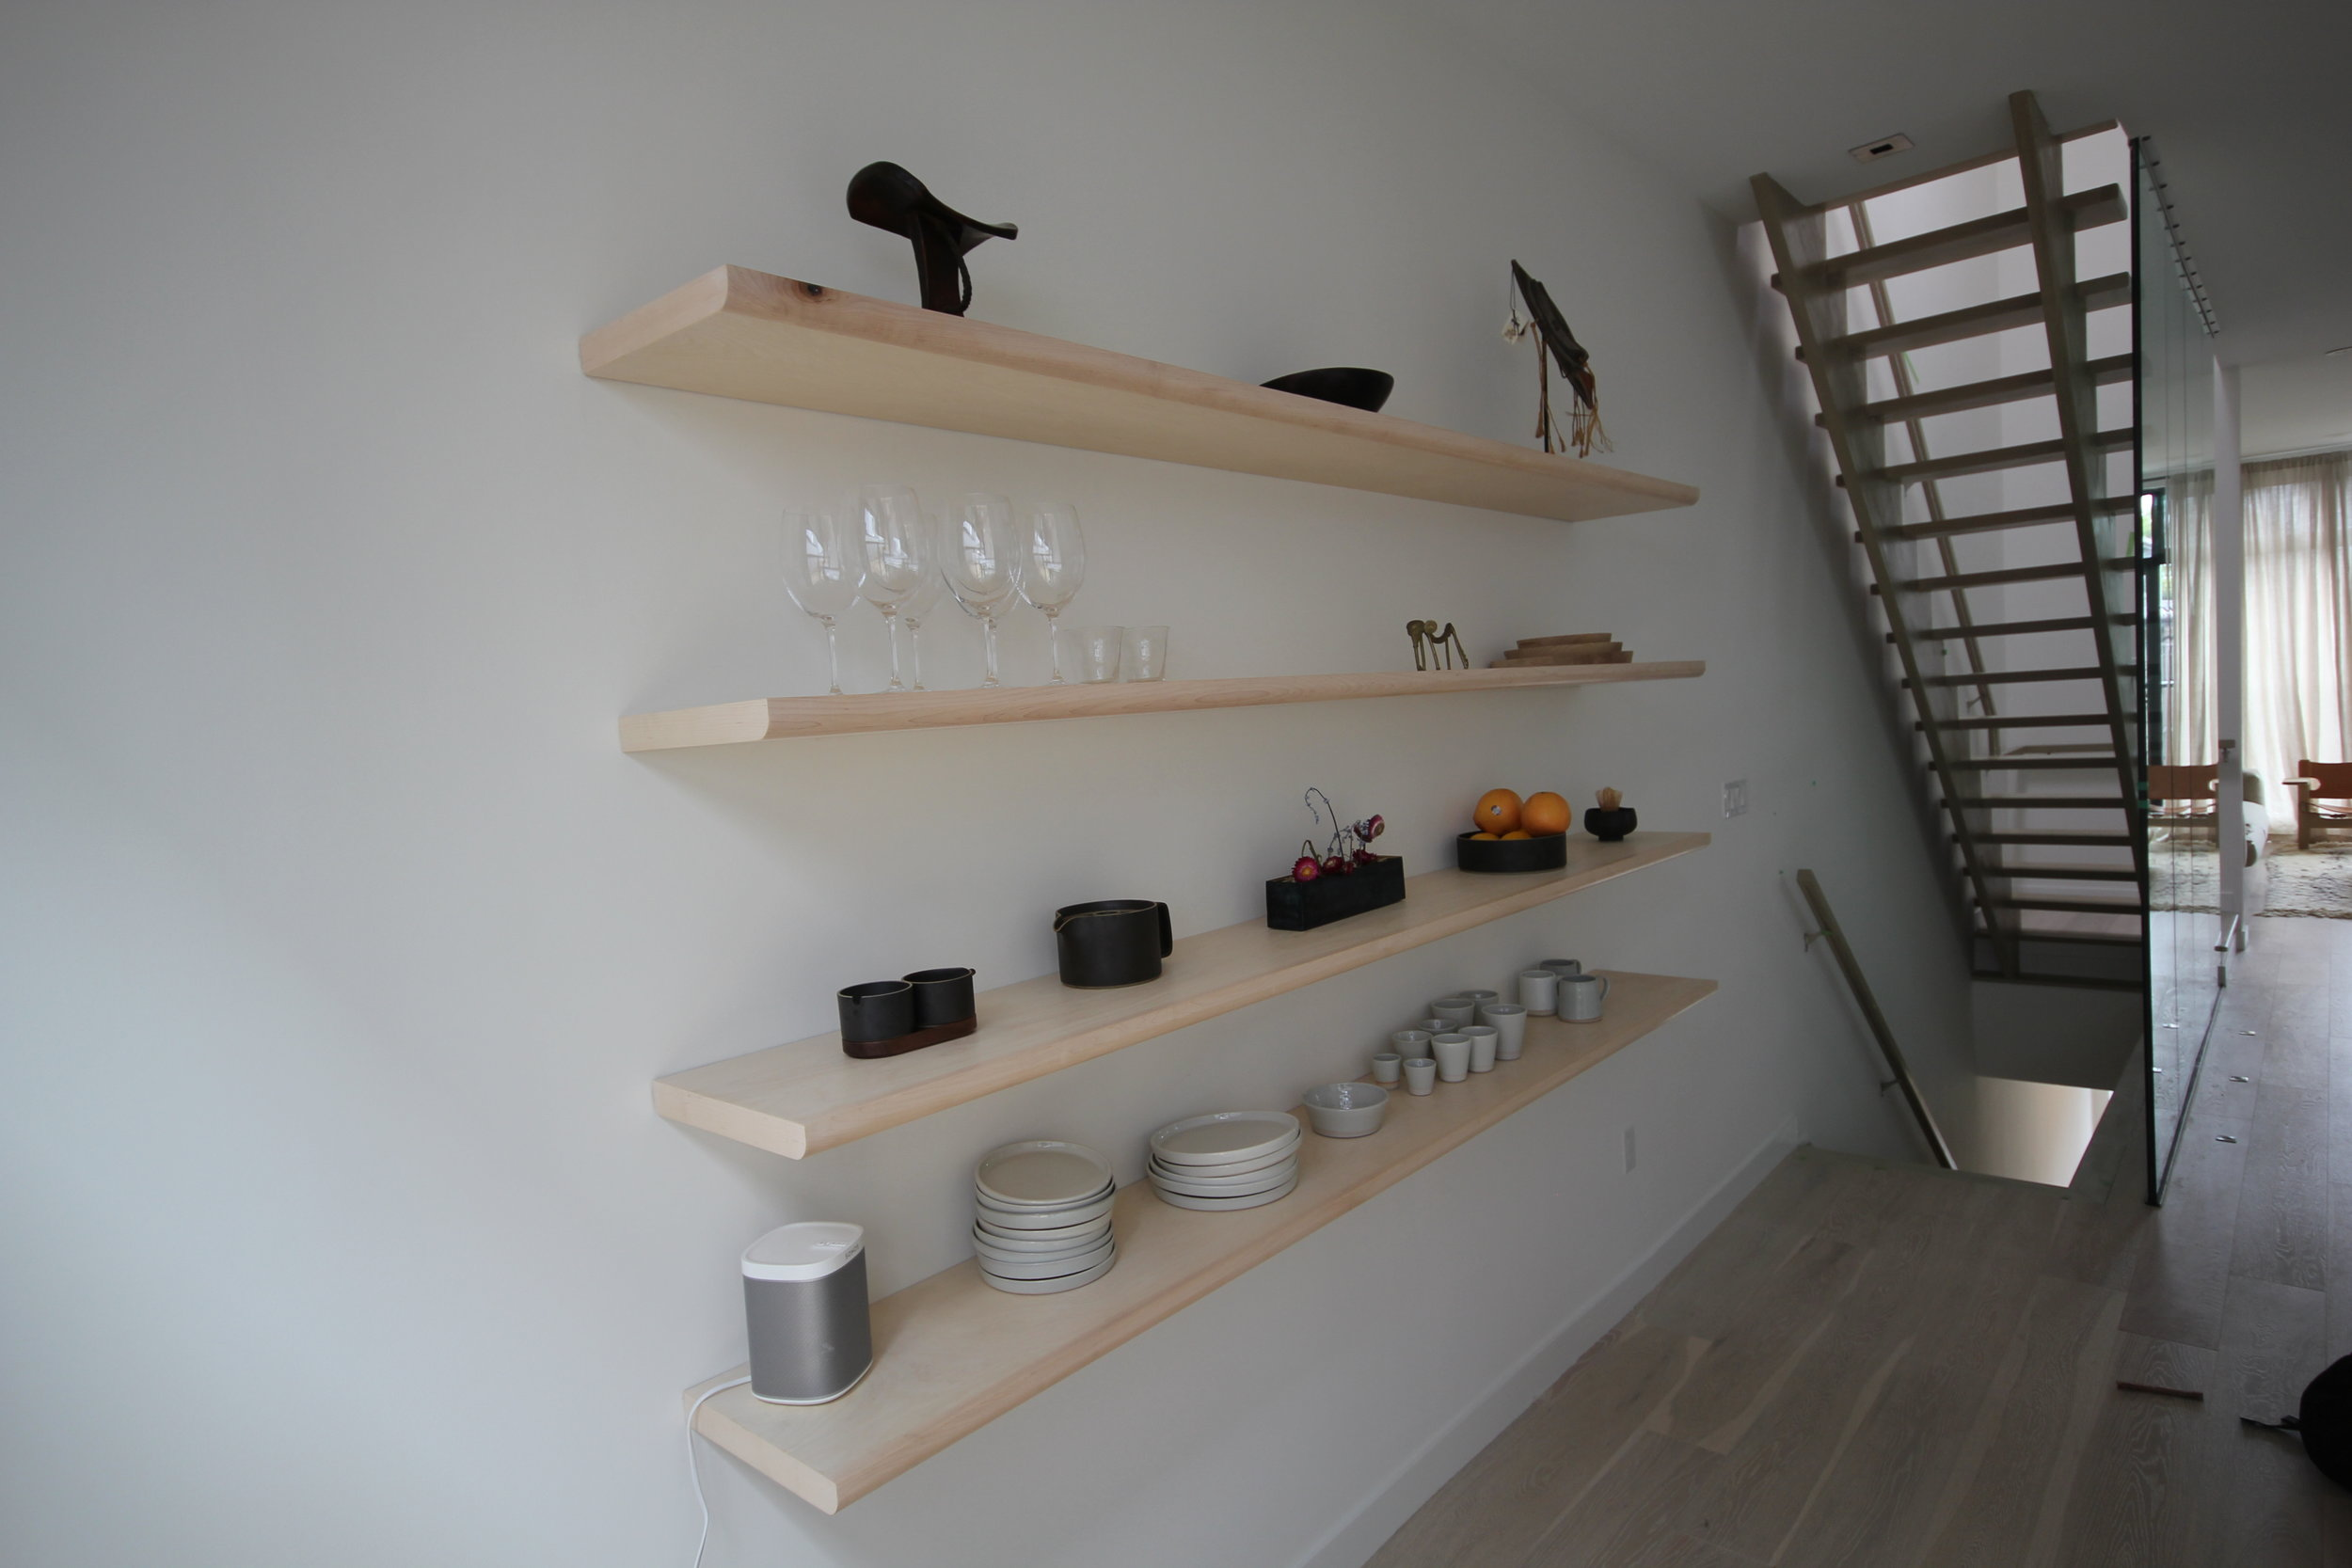 Kitchen-8' Baltic Birch floating shelves.